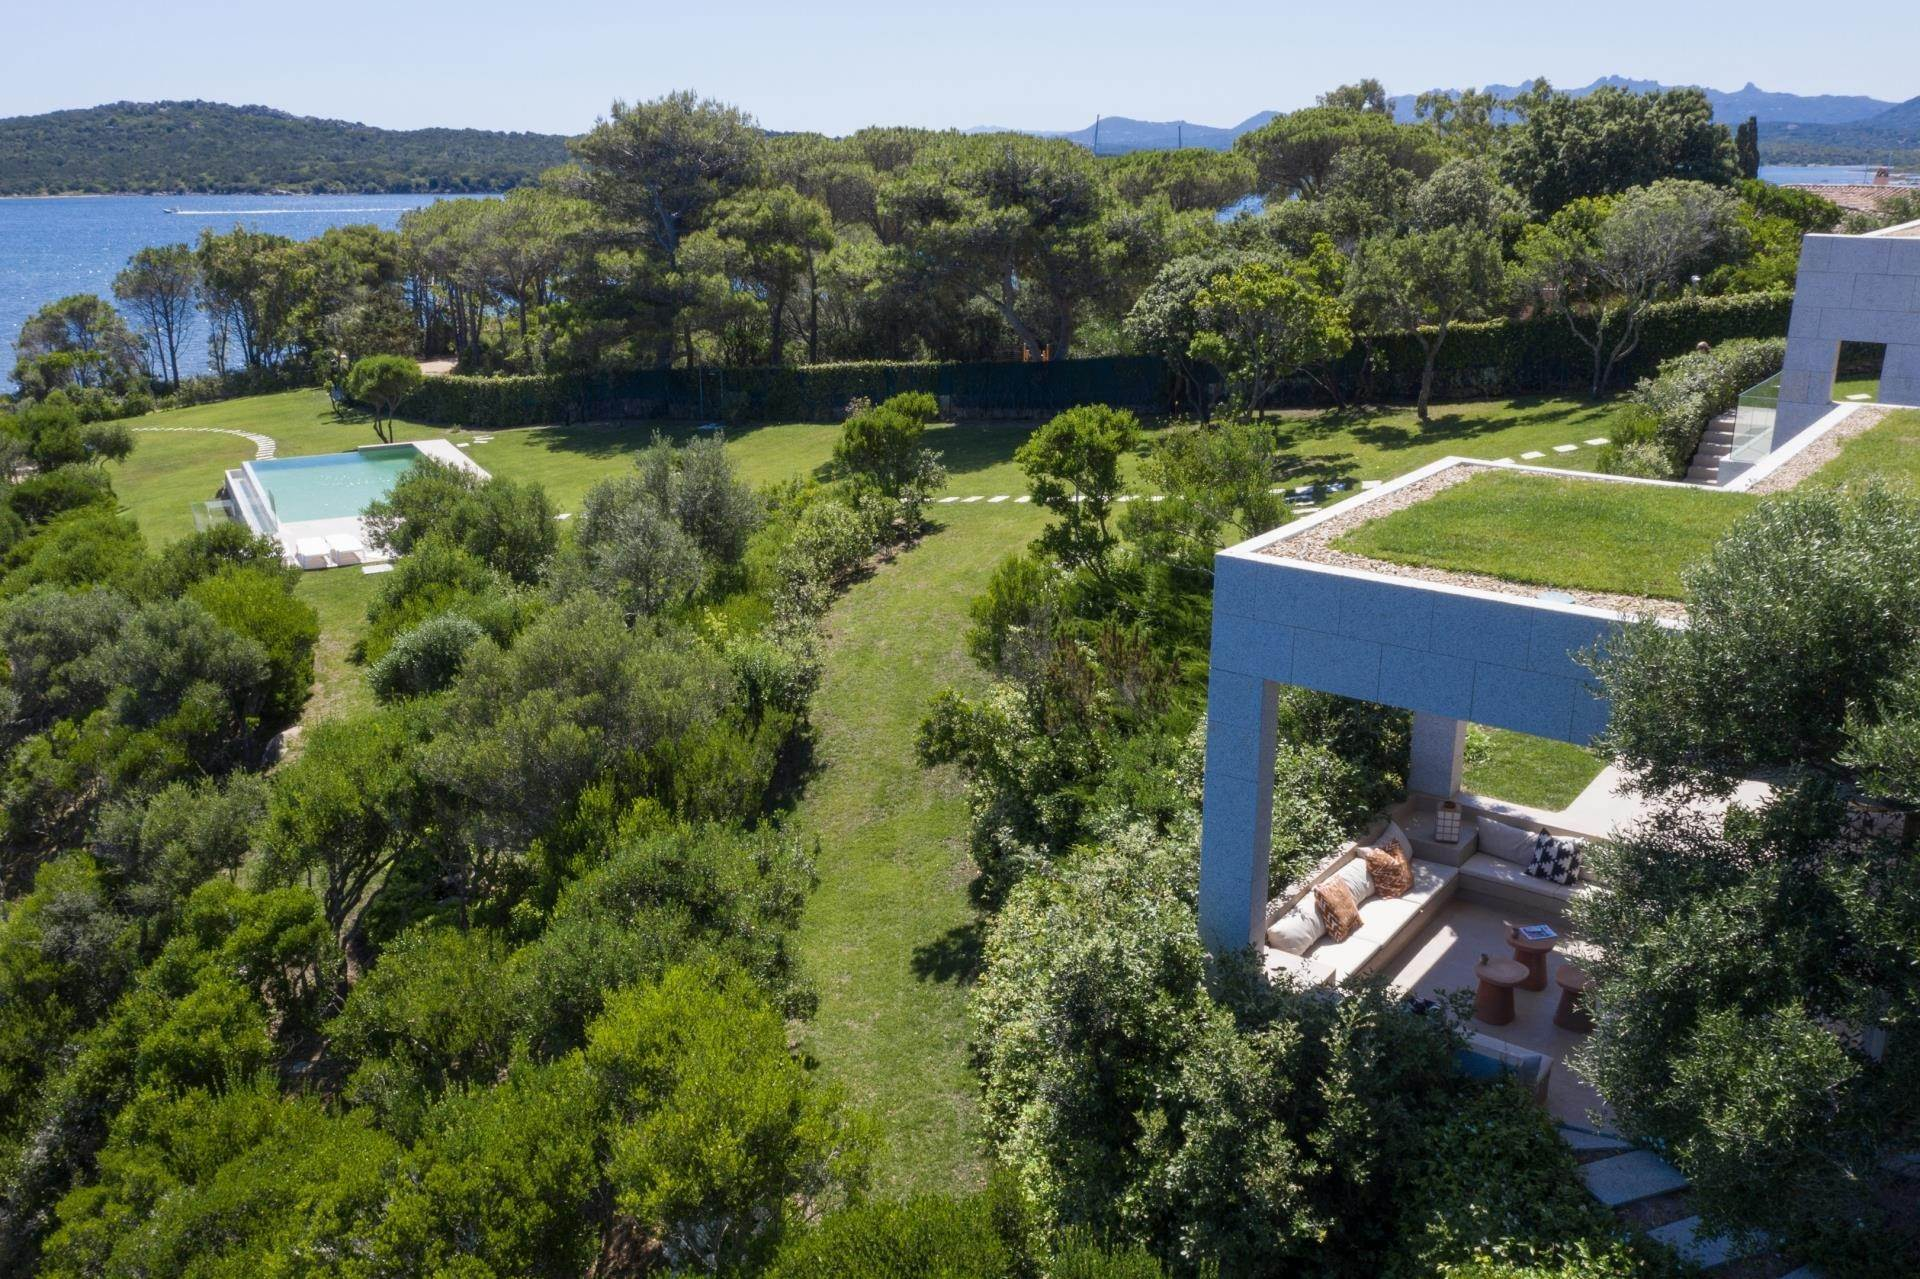 6. Villa/Townhouse for Sale at Waterfront Villa La Coluccia Costa Smeralda, Olbia Tempio,07020 Italy